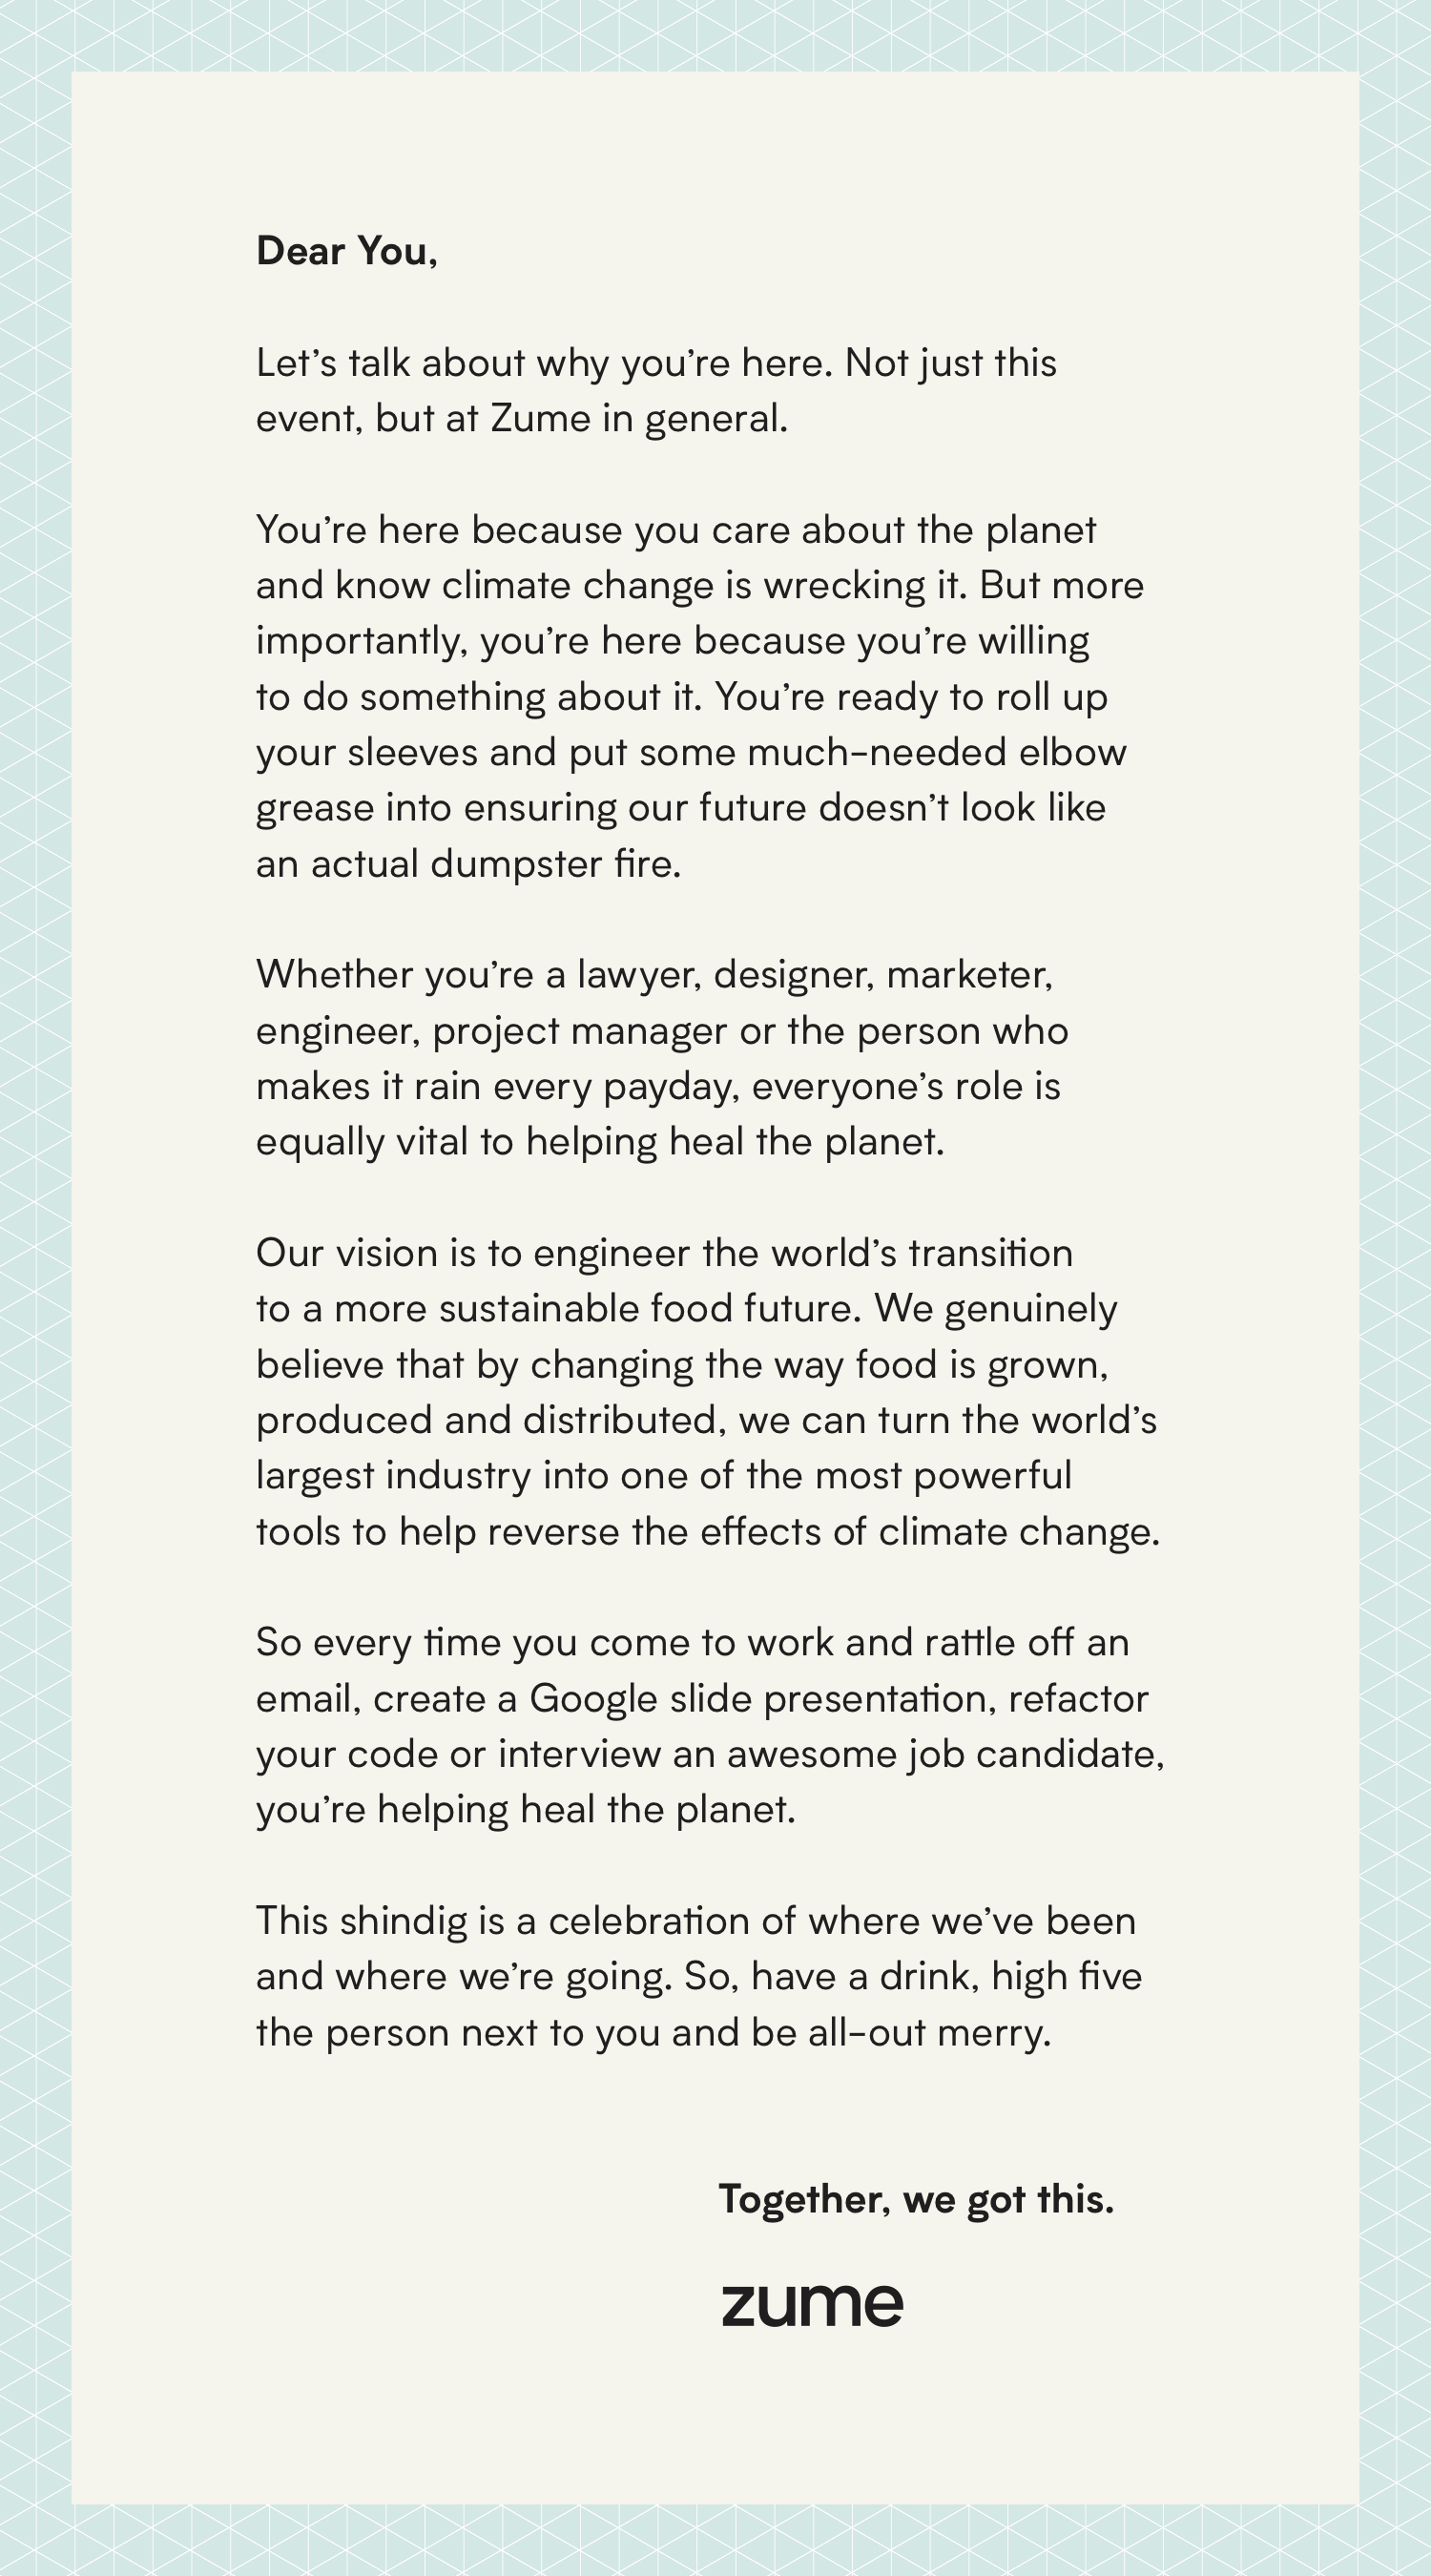 Letter - On the day of the brand launch, we flew everyone in from every office for a celebration (and to get us all on the same page). H.R. McMaster even showed up. No joke. Anyway, we wrote a letter to give to inspire 400+ employees about why they work at Zume.